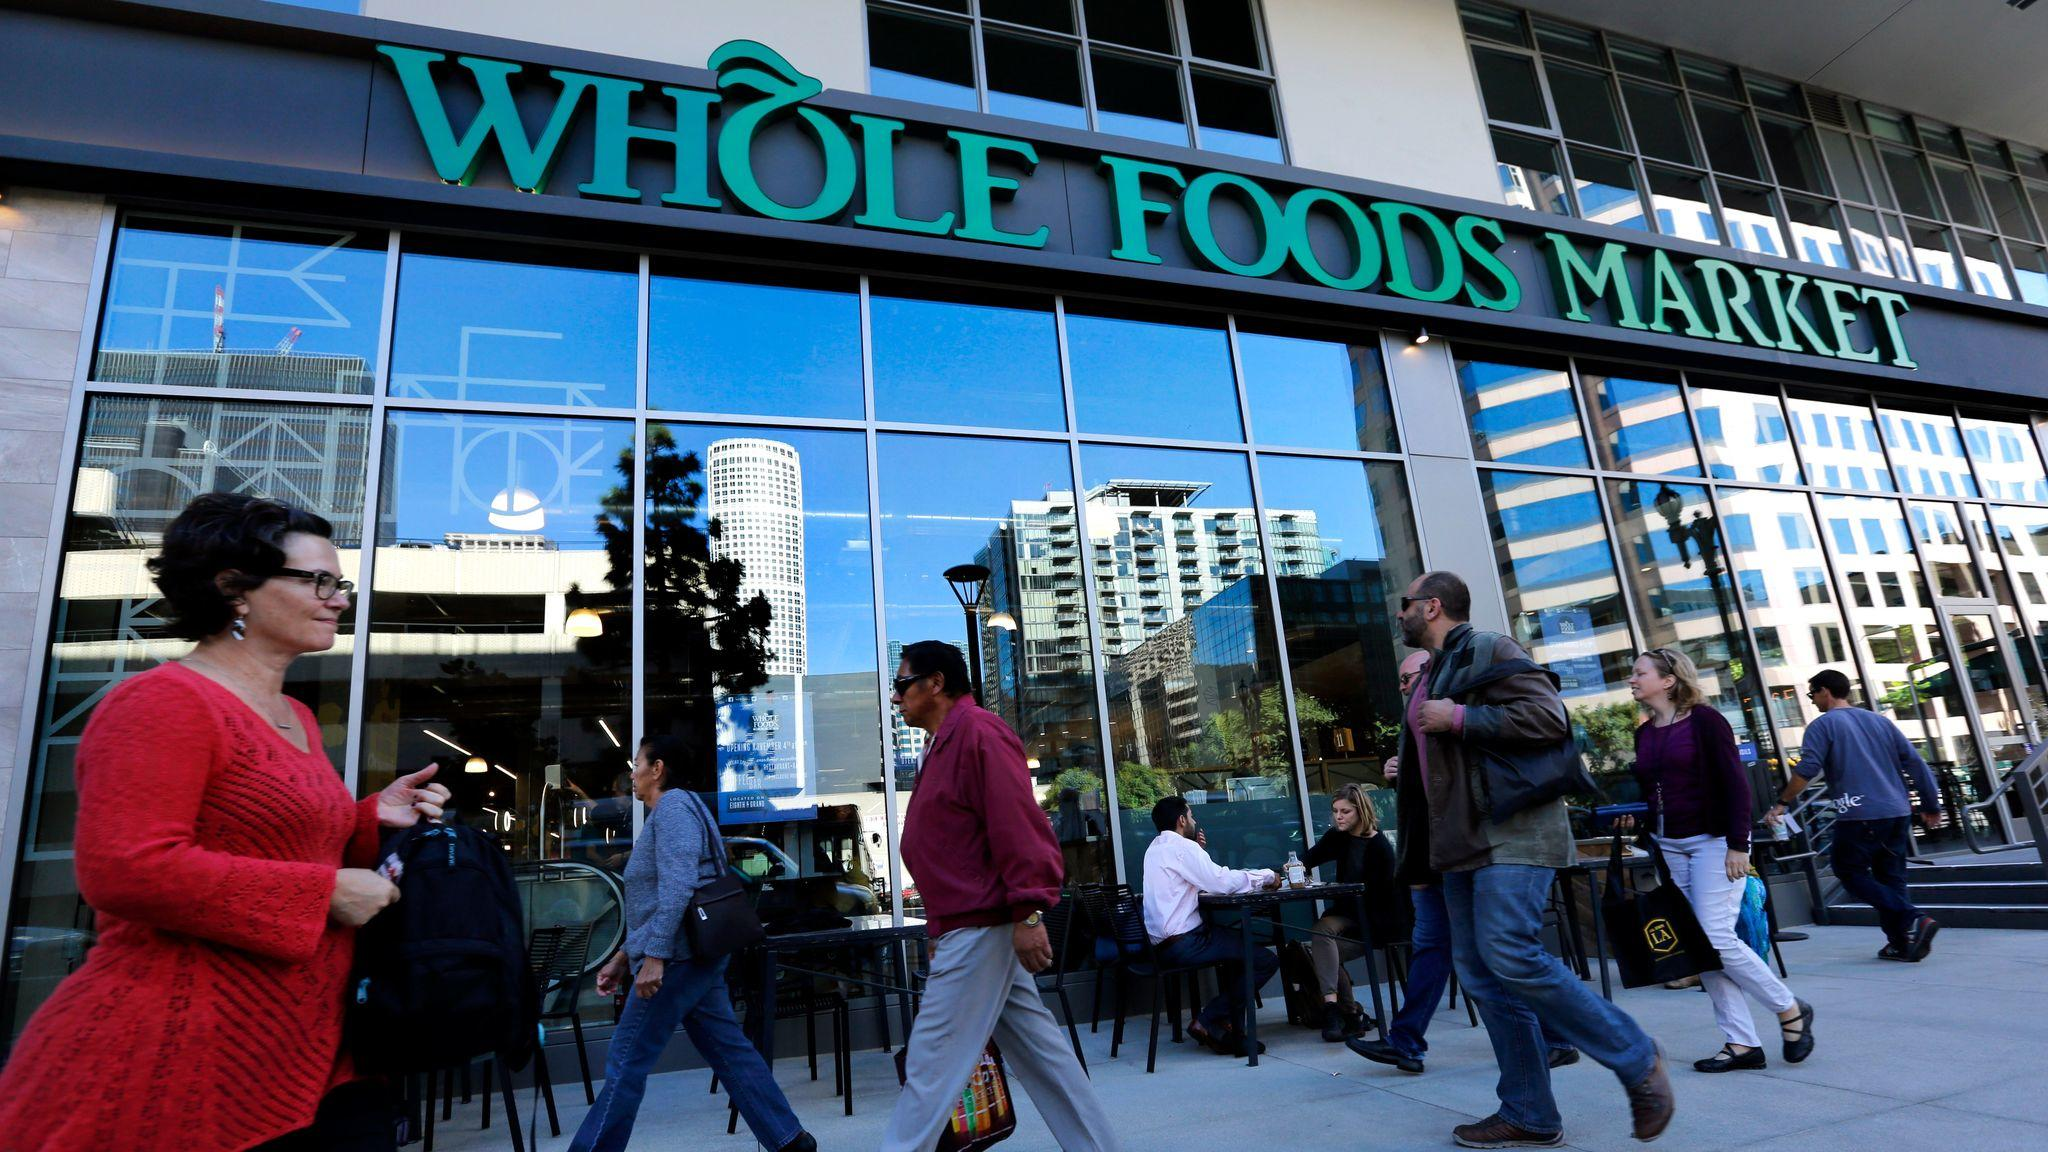 Pedestrians make their way past a Whole Foods Market on Grand Avenue in downtown Los Angeles during the store's grand opening on December 4, 2015.